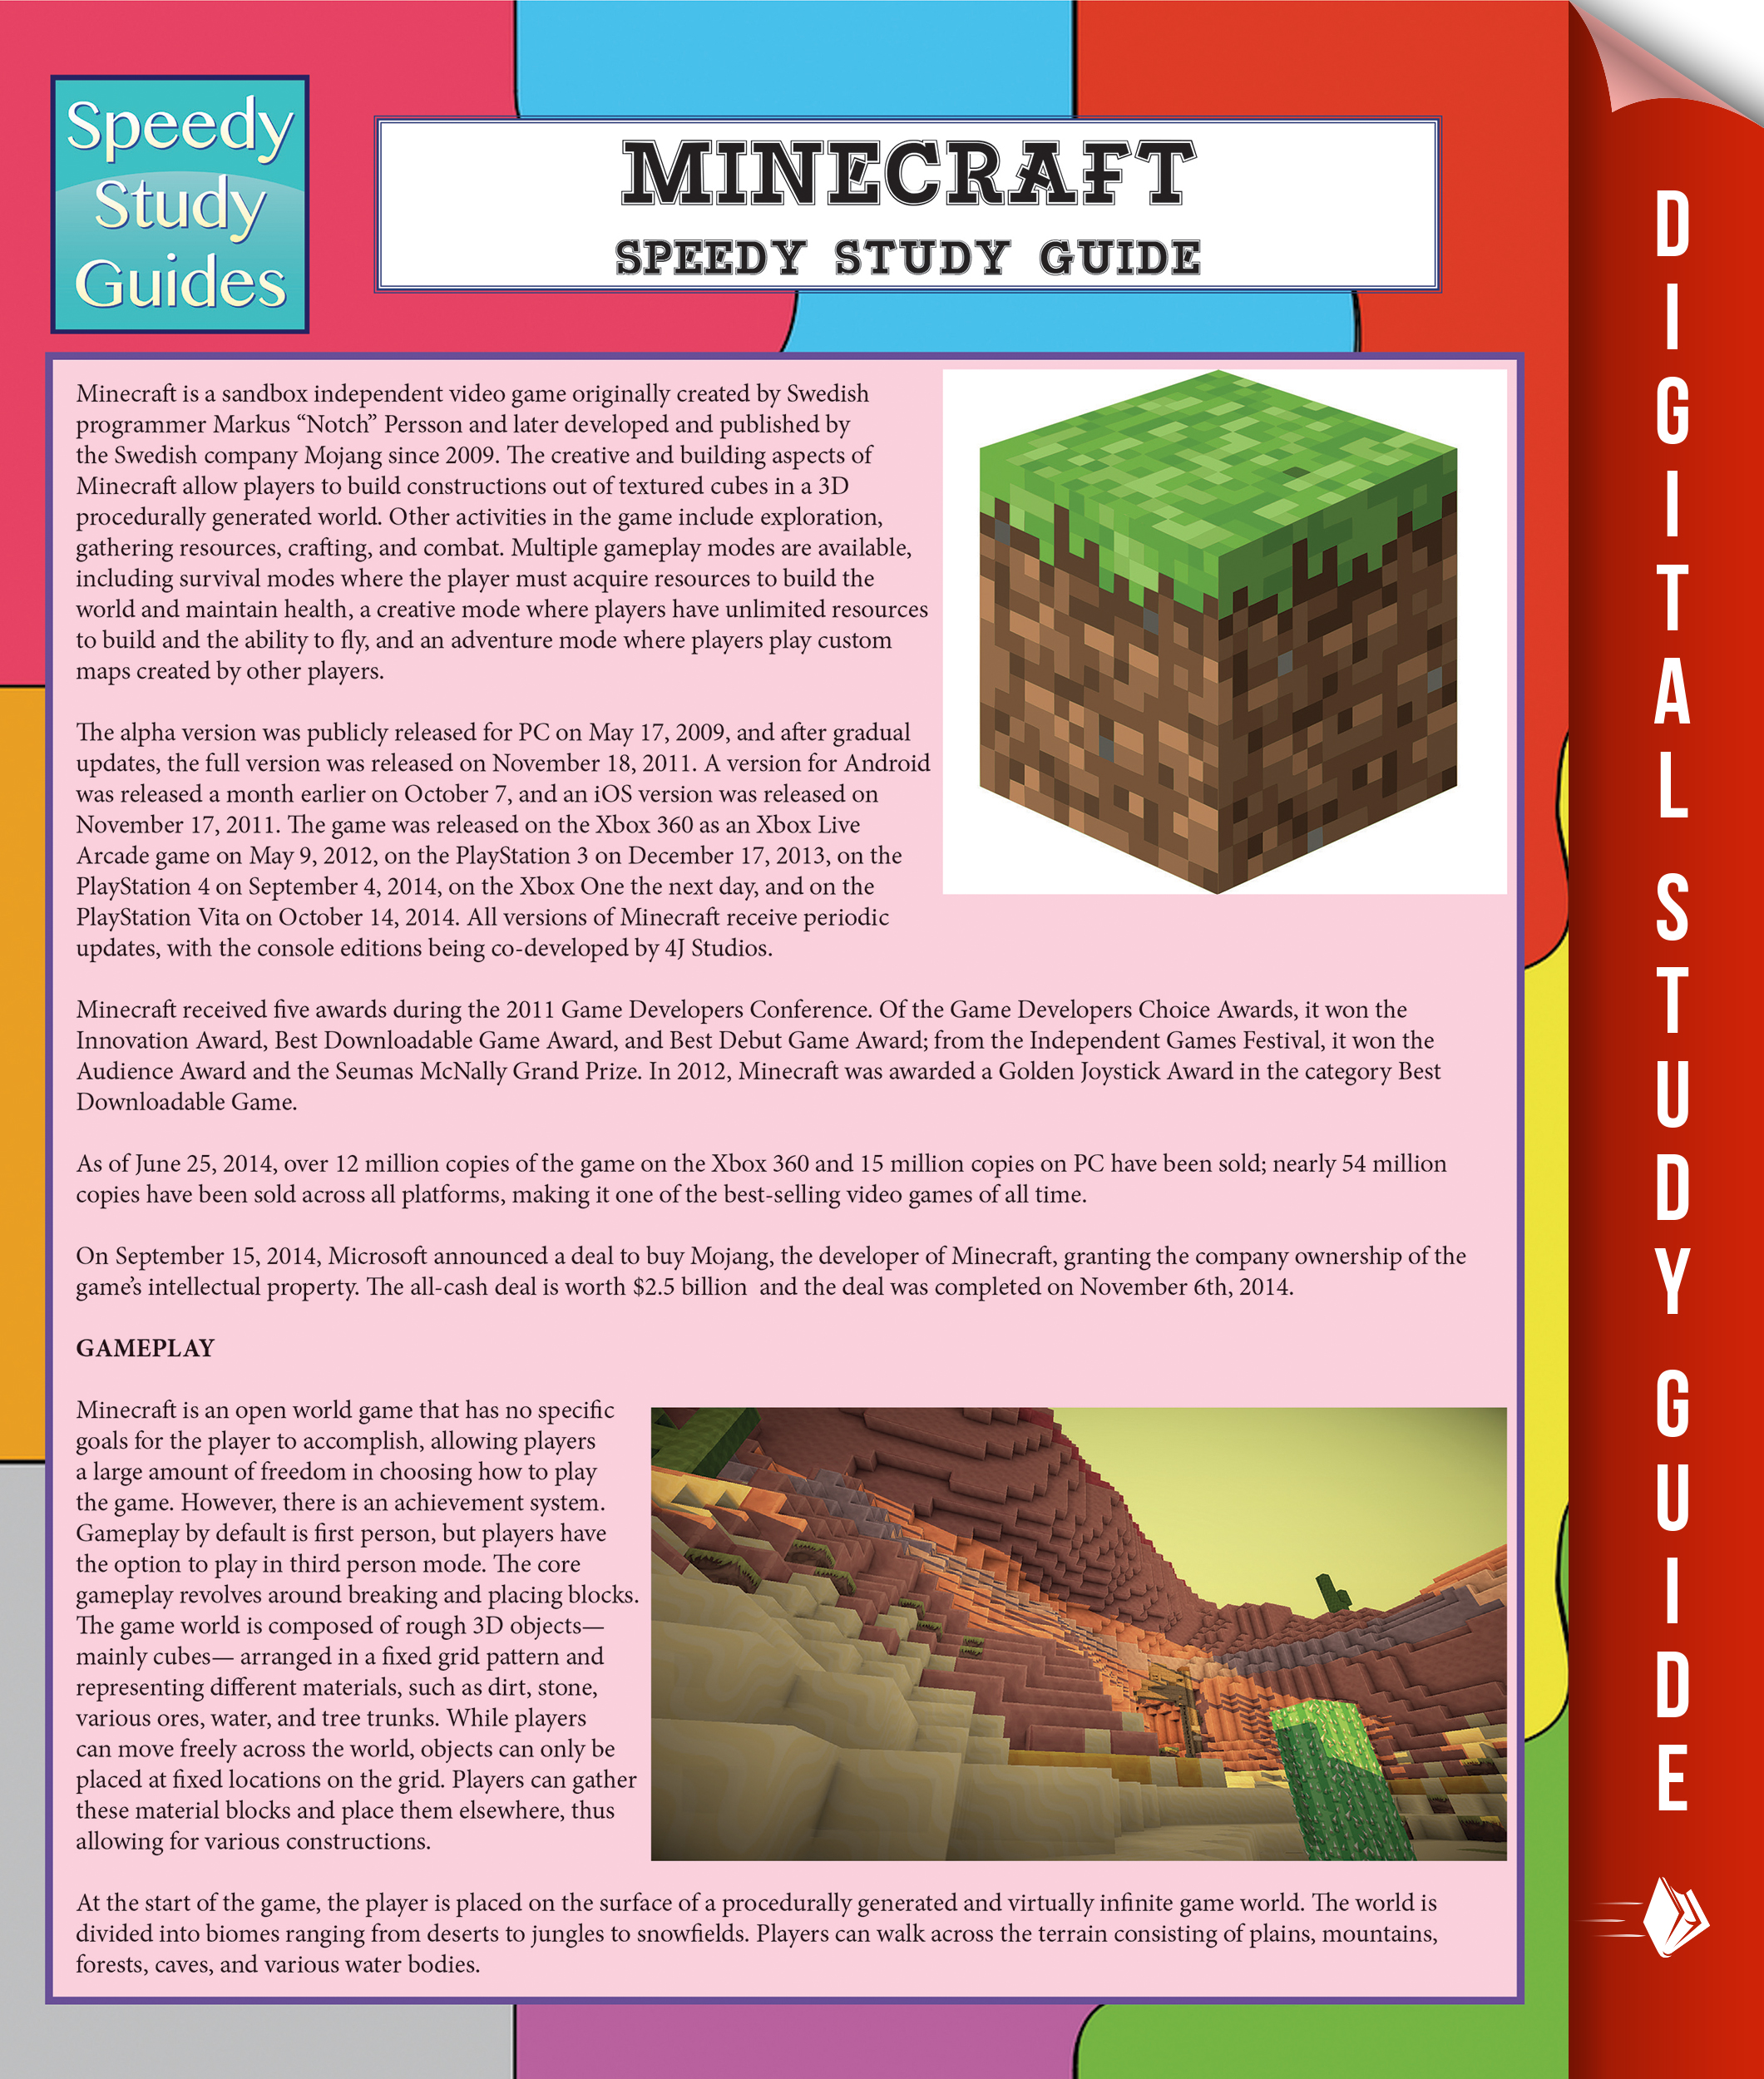 Minecraft Speedy Study Guide (Speedy Study Guide)